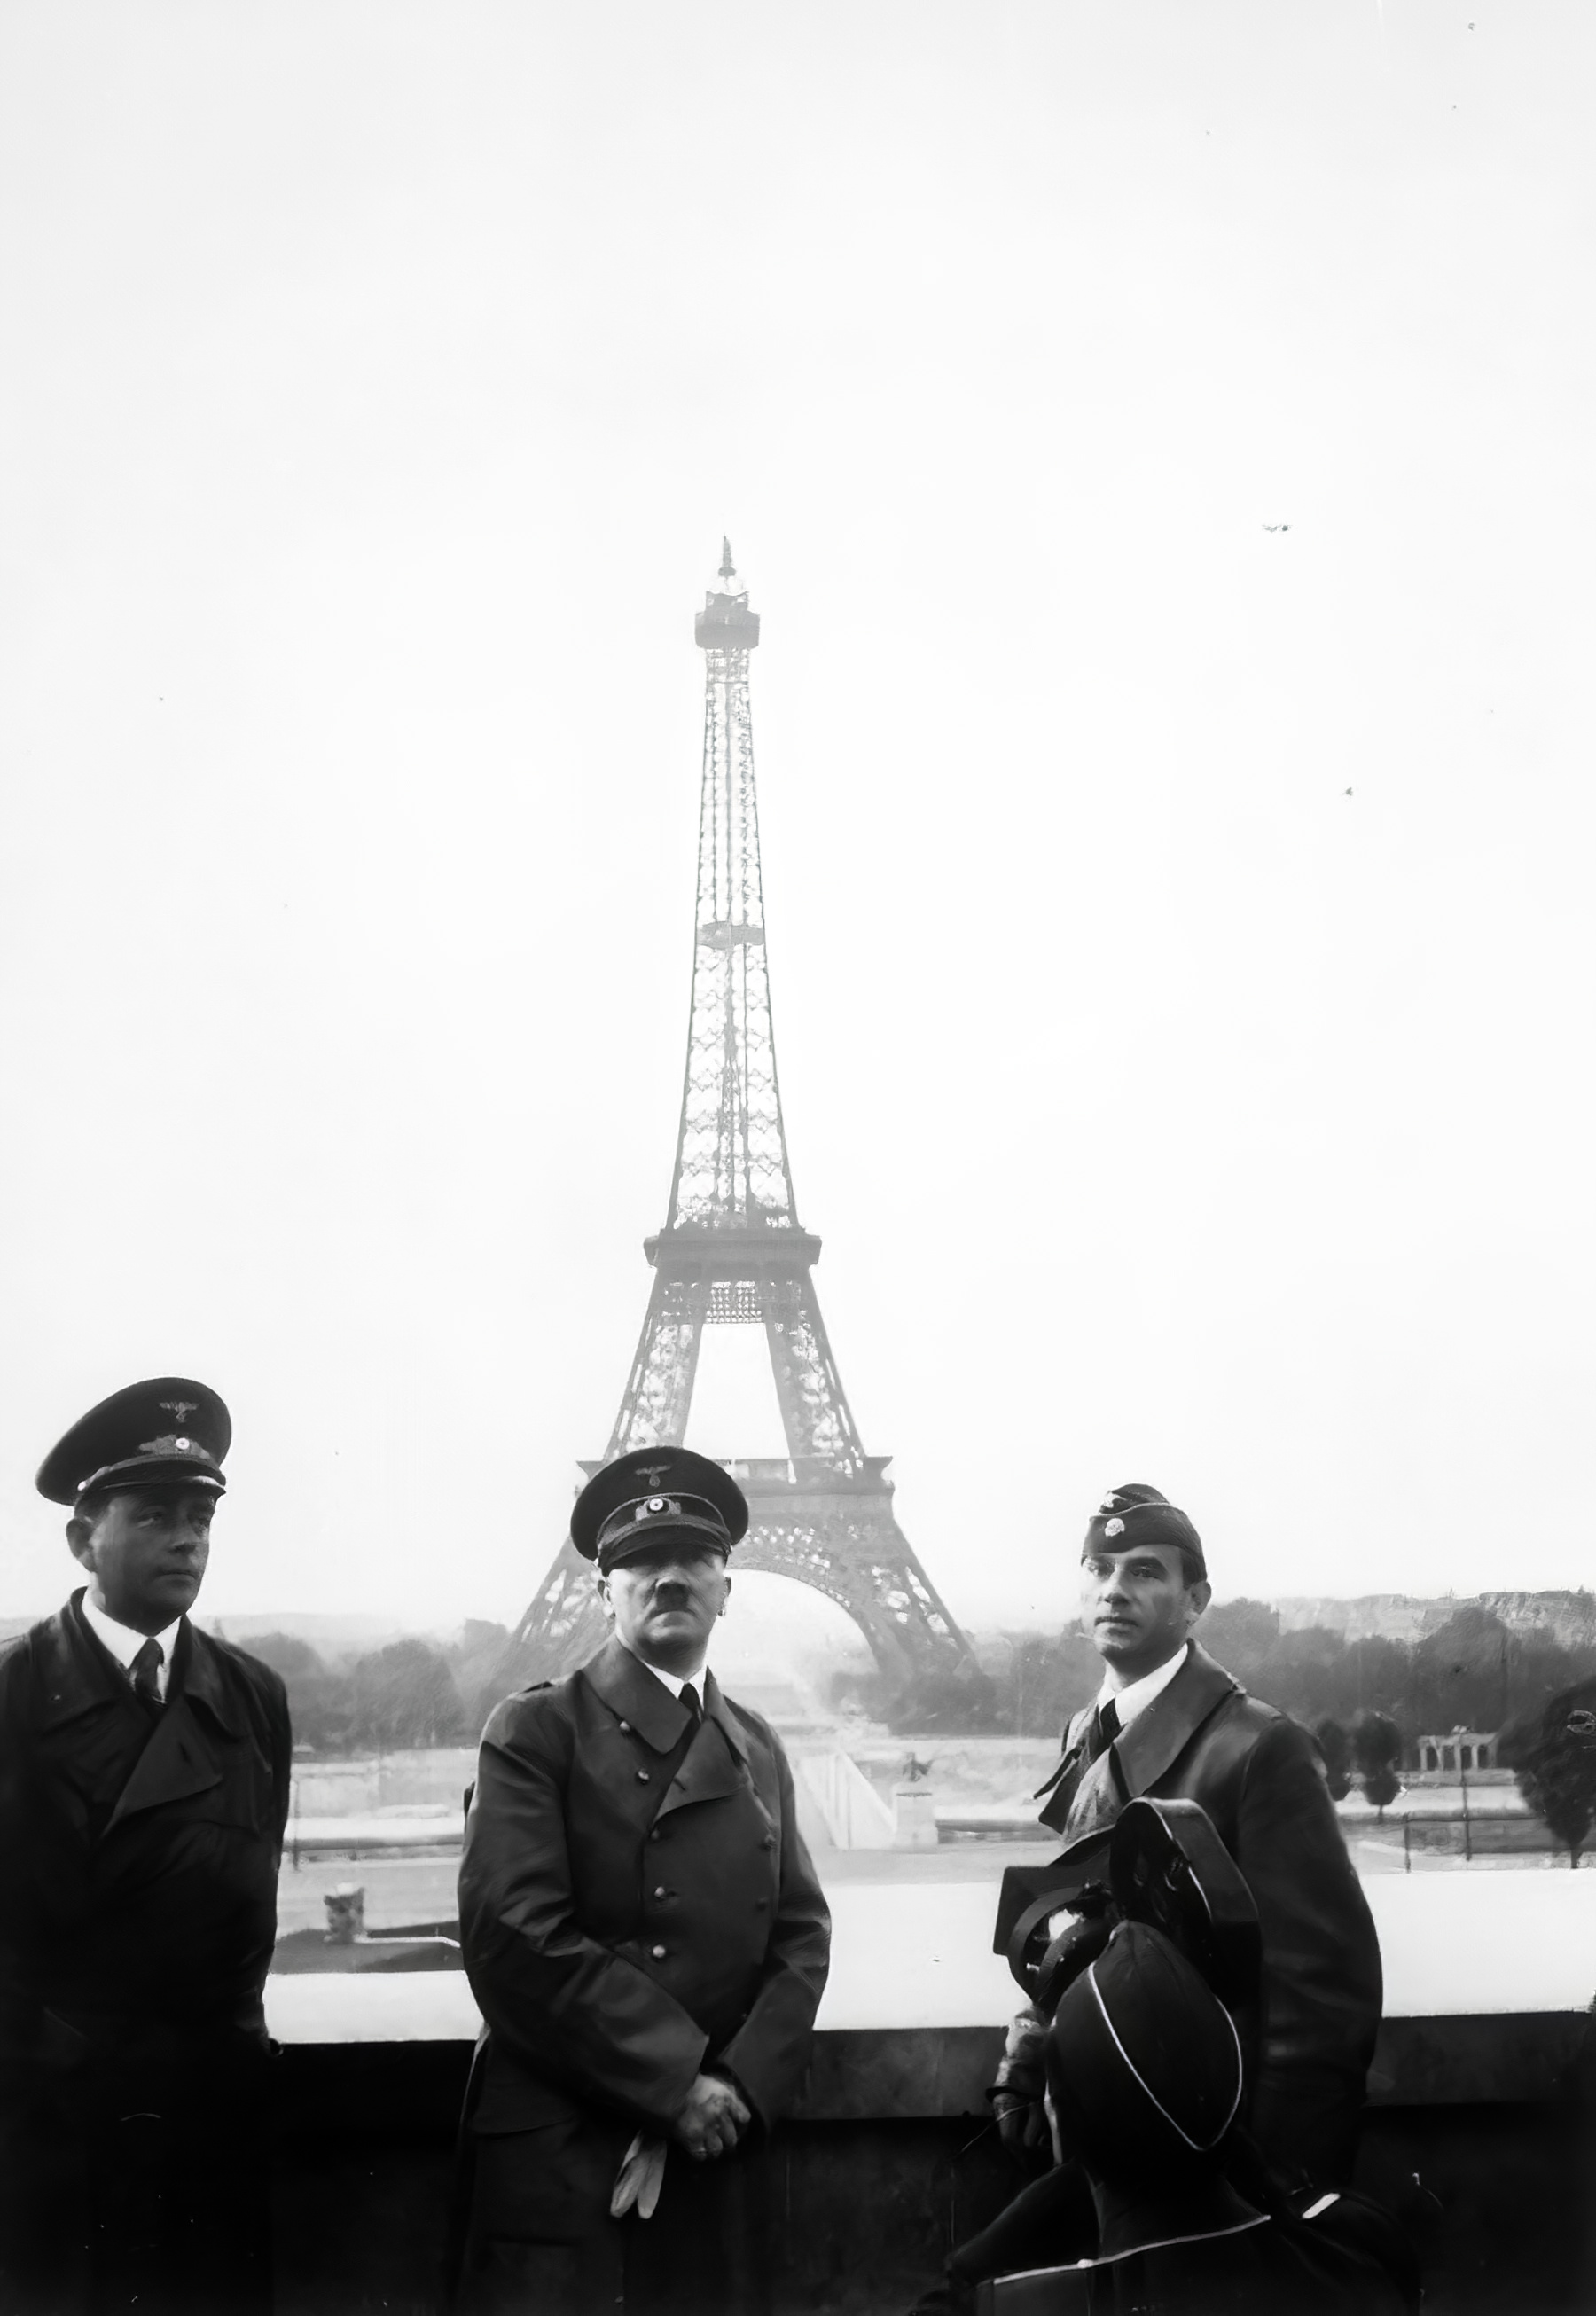 Hitler tours Paris with architect Albert Speer (L) and sculptor Arno Breker (R) 23rd June 1940 wiki 01